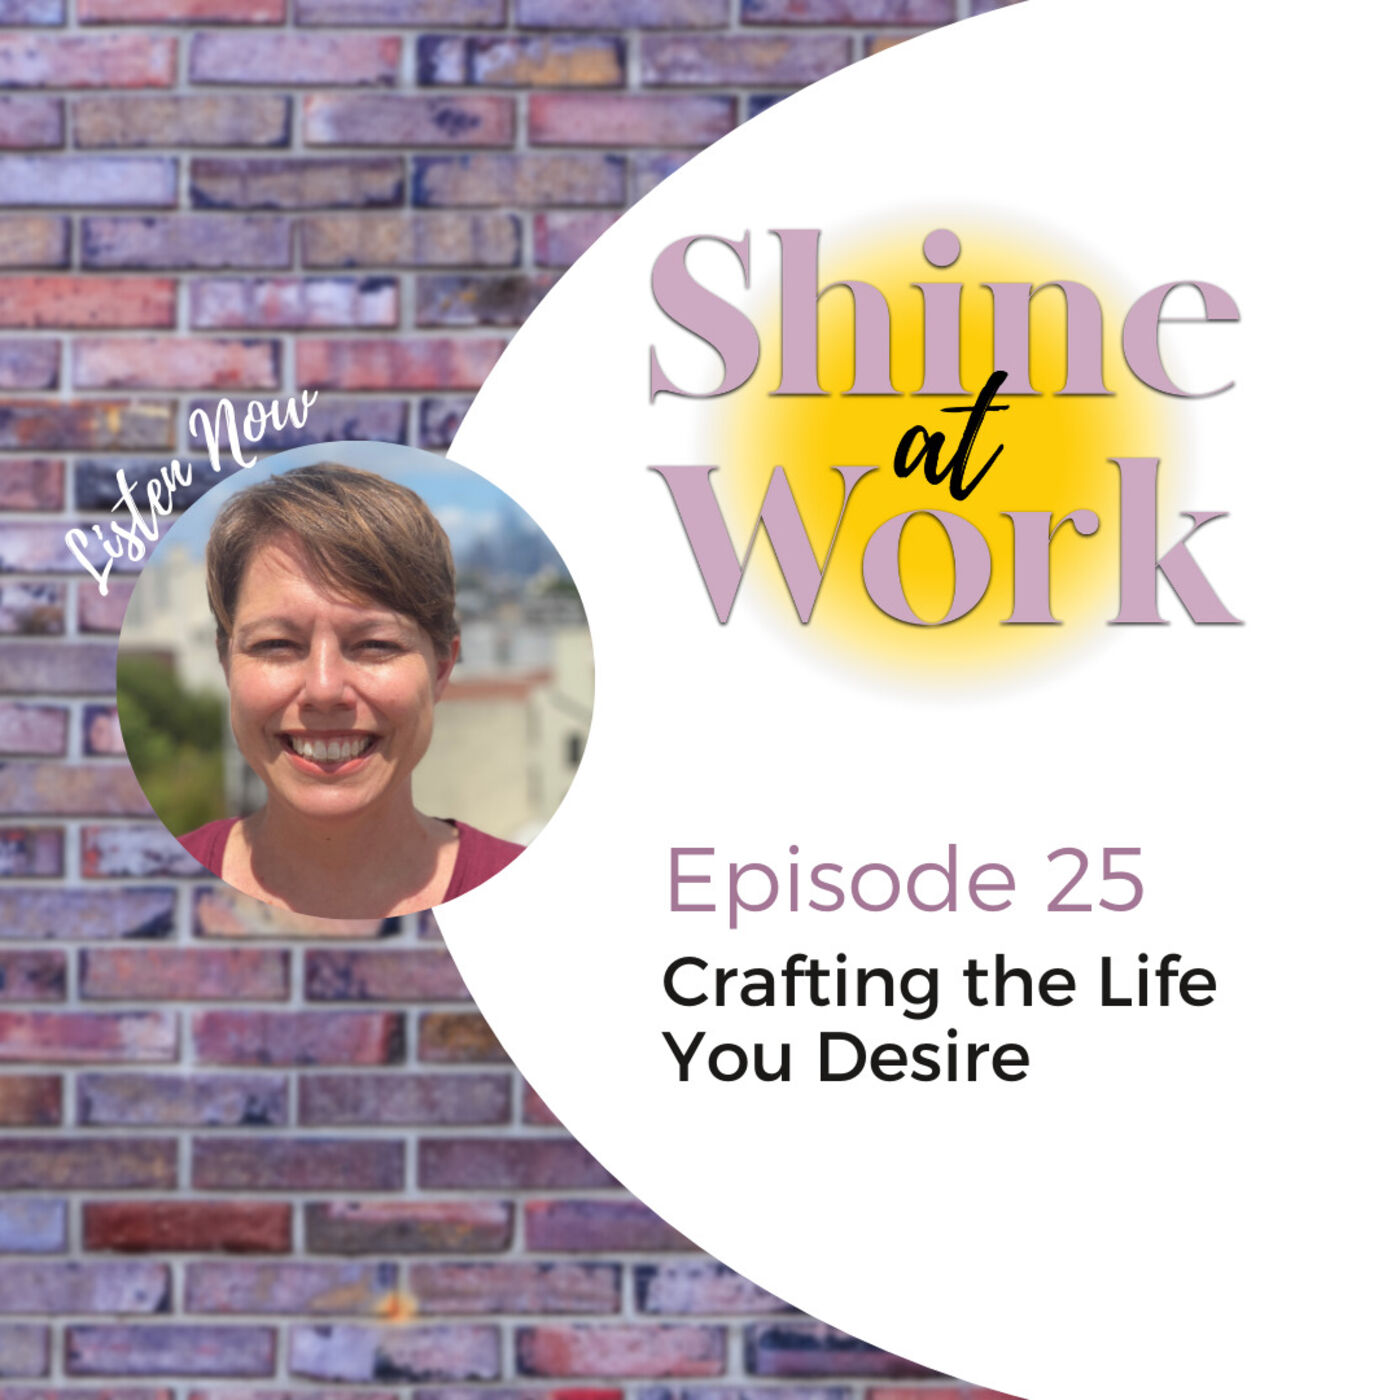 Episode 25 - Crafting the Life You Desire